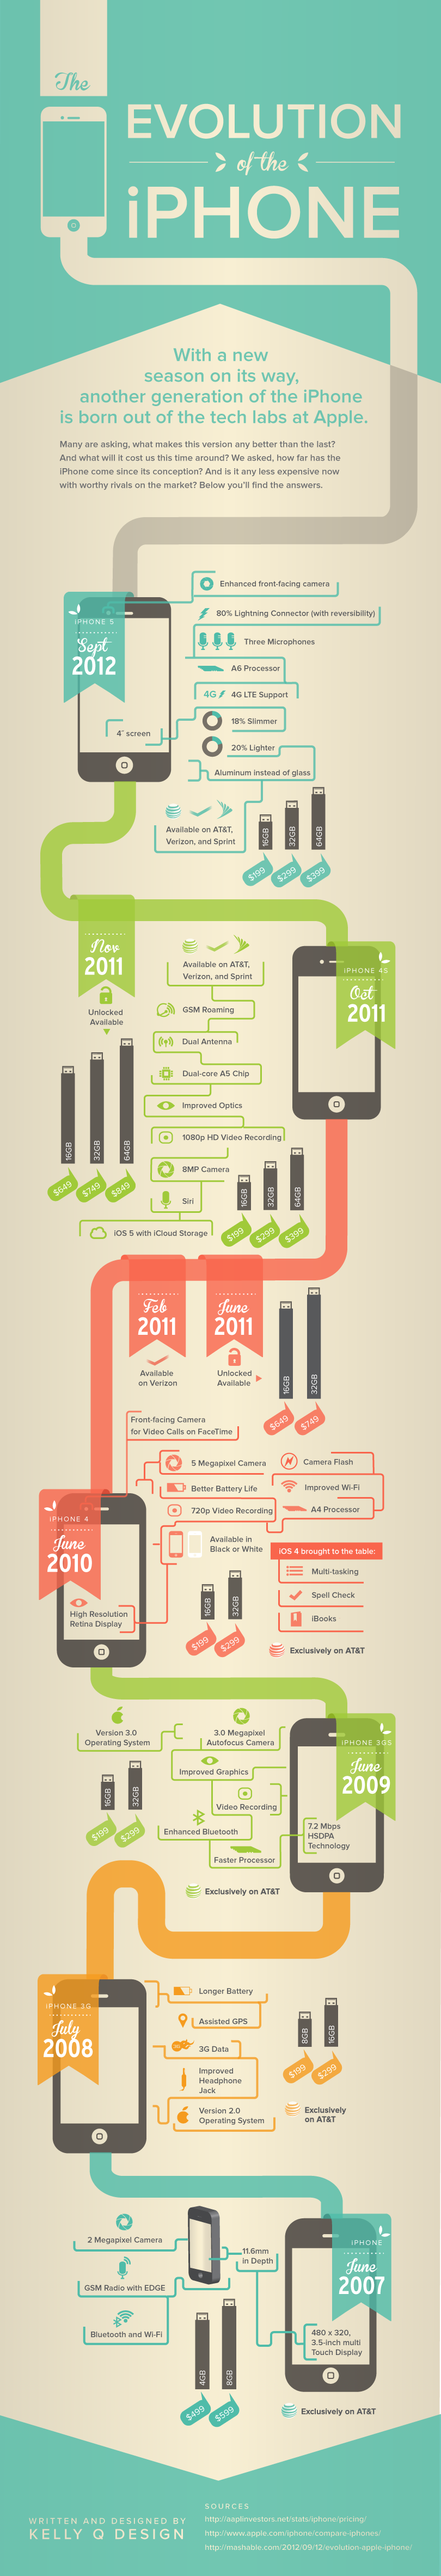 iphone history timeline infographic the evolution of the iphone macgasm 11925